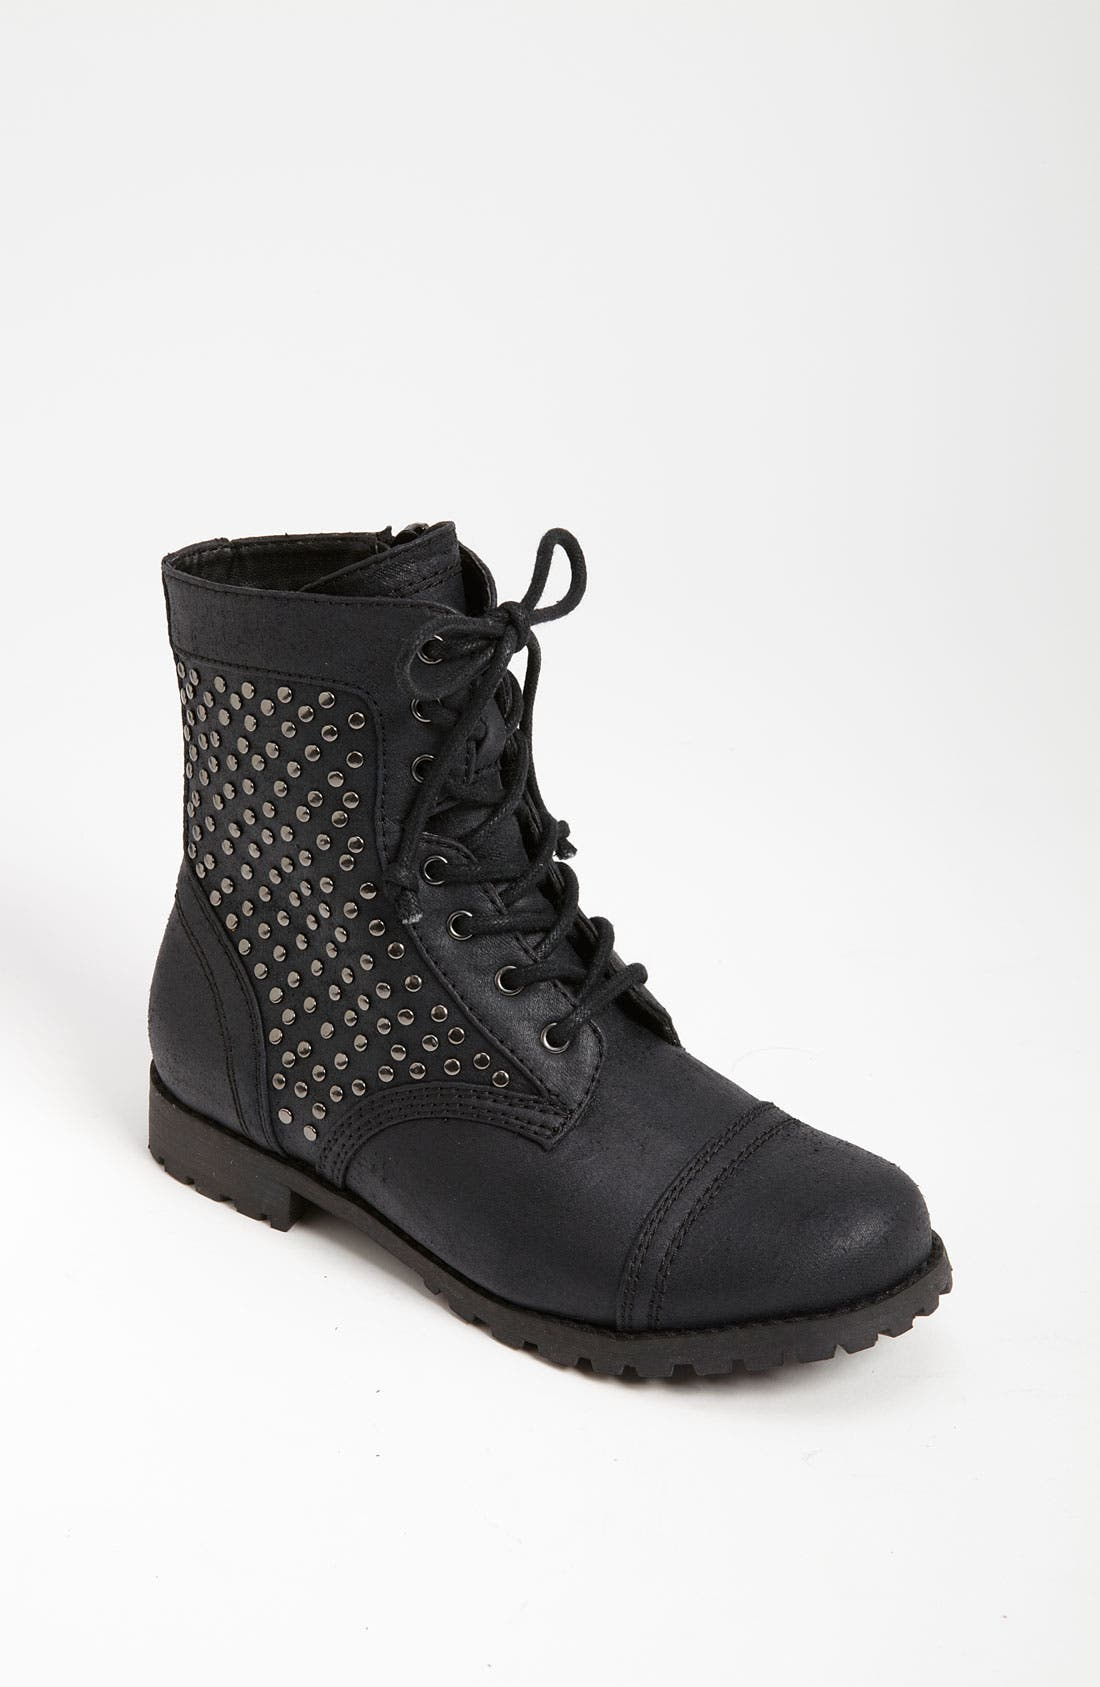 Alternate Image 1 Selected - Steve Madden 'Kommitt' Boot (Toddler, Little Kid & Big Kid)